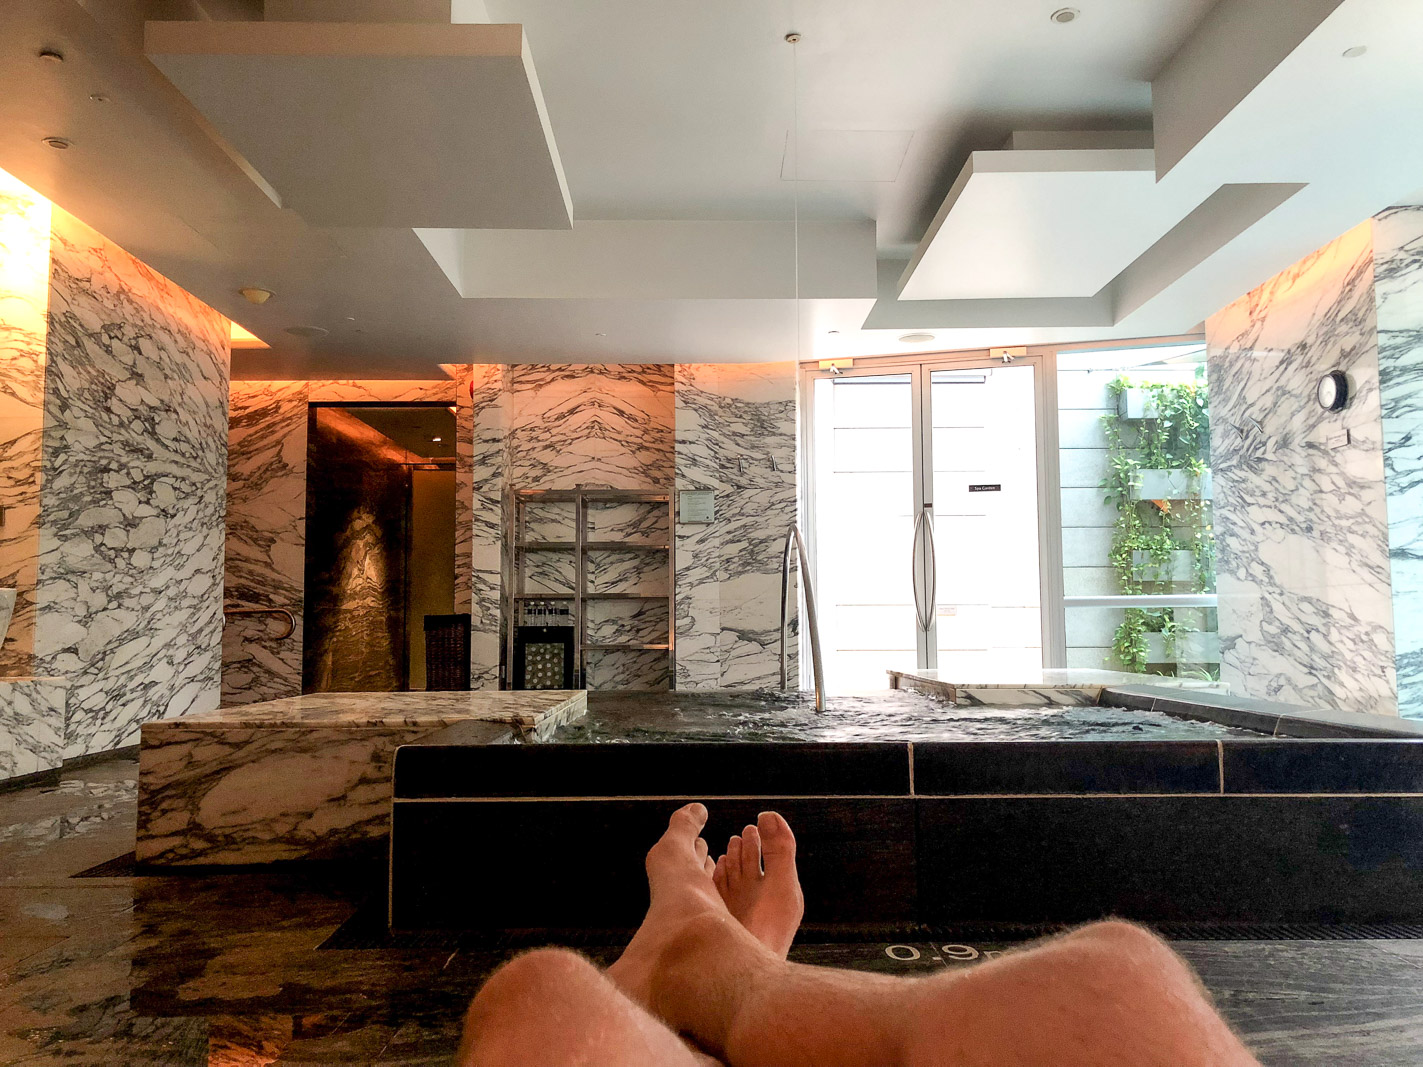 laying down at the St. Regis Singapore Spa